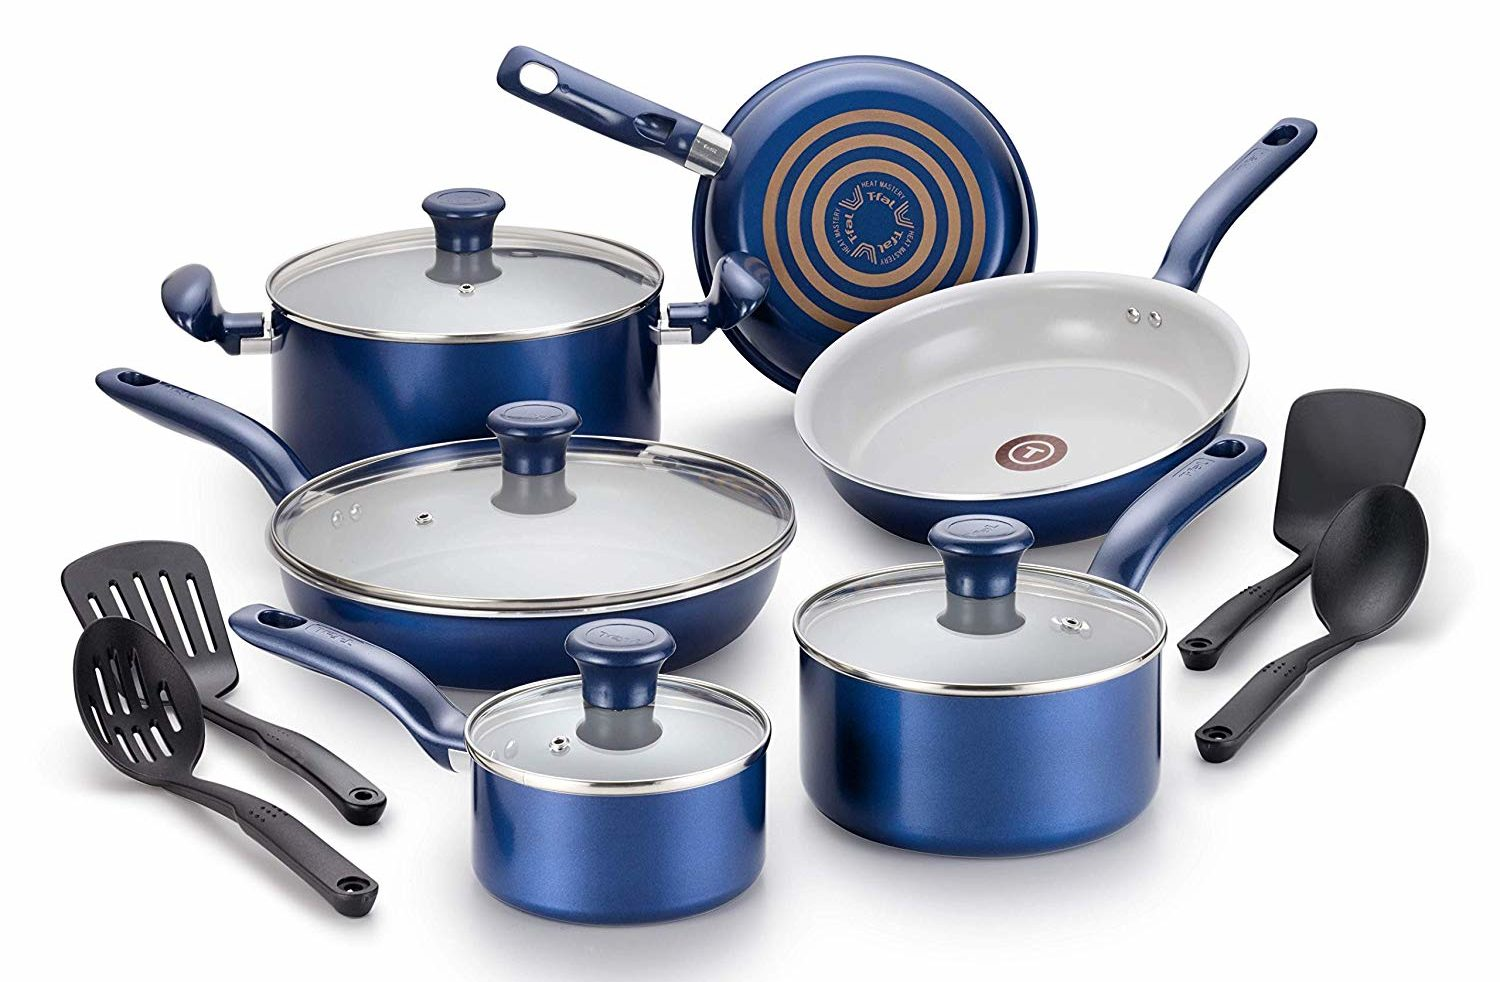 T Fal Ceramic Cookware Reviews Initiatives And Precision